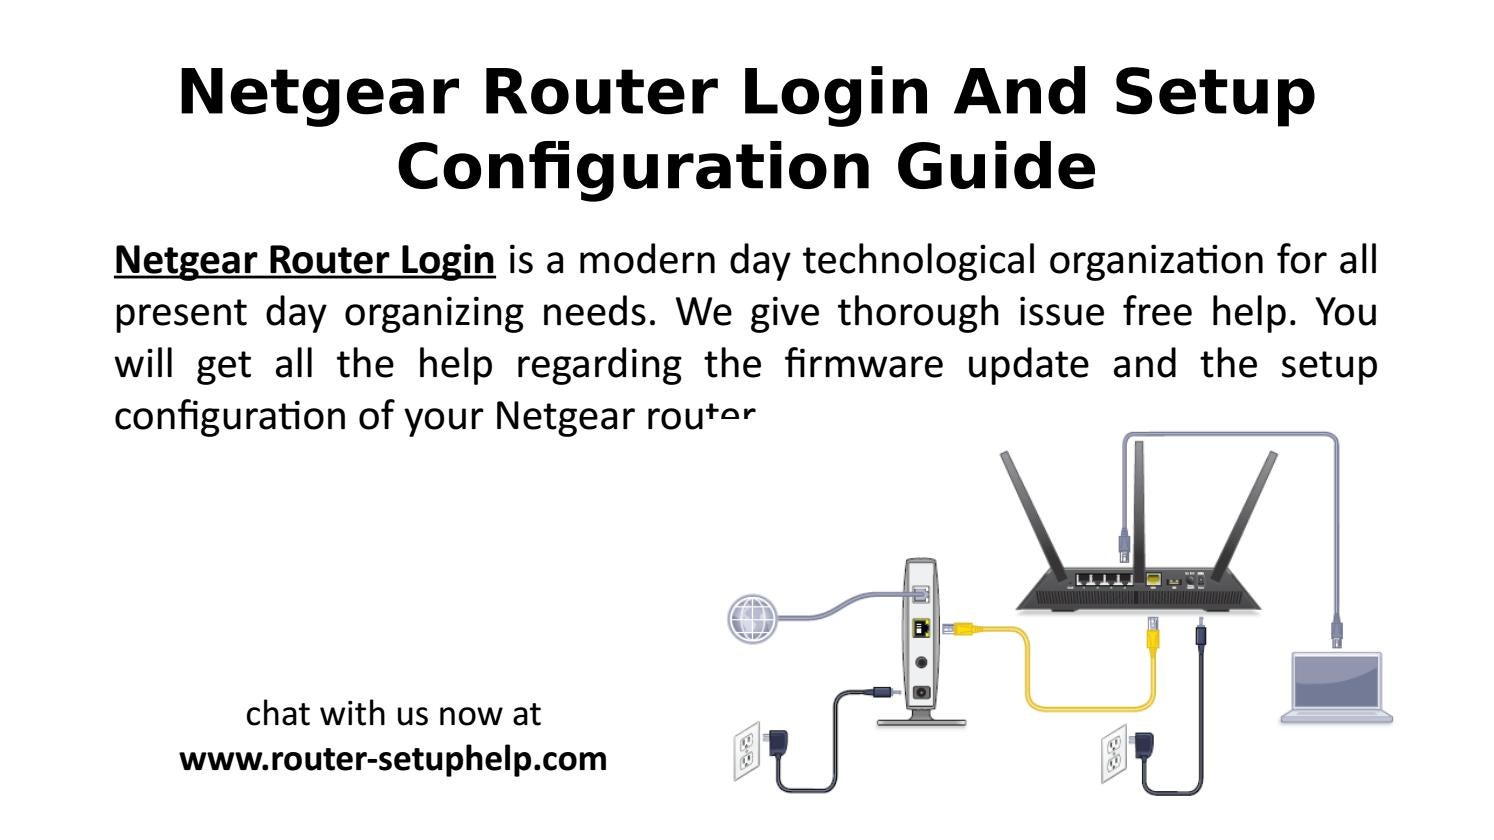 Netgear Router Login And Setup Configuration Guide by